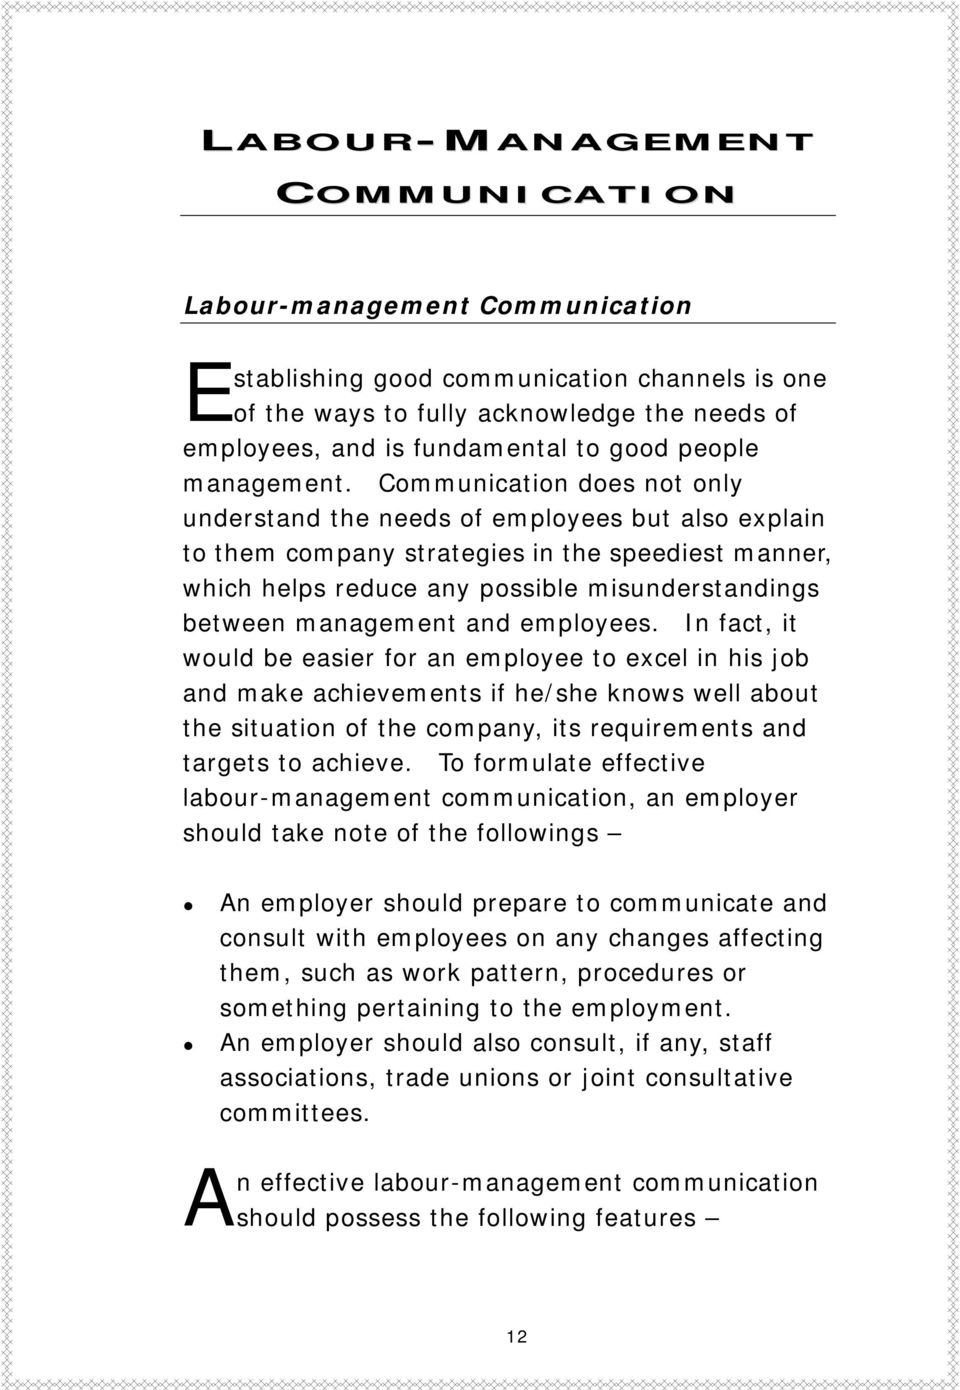 Communication does not only understand the needs of employees but also explain to them company strategies in the speediest manner, which helps reduce any possible misunderstandings between management